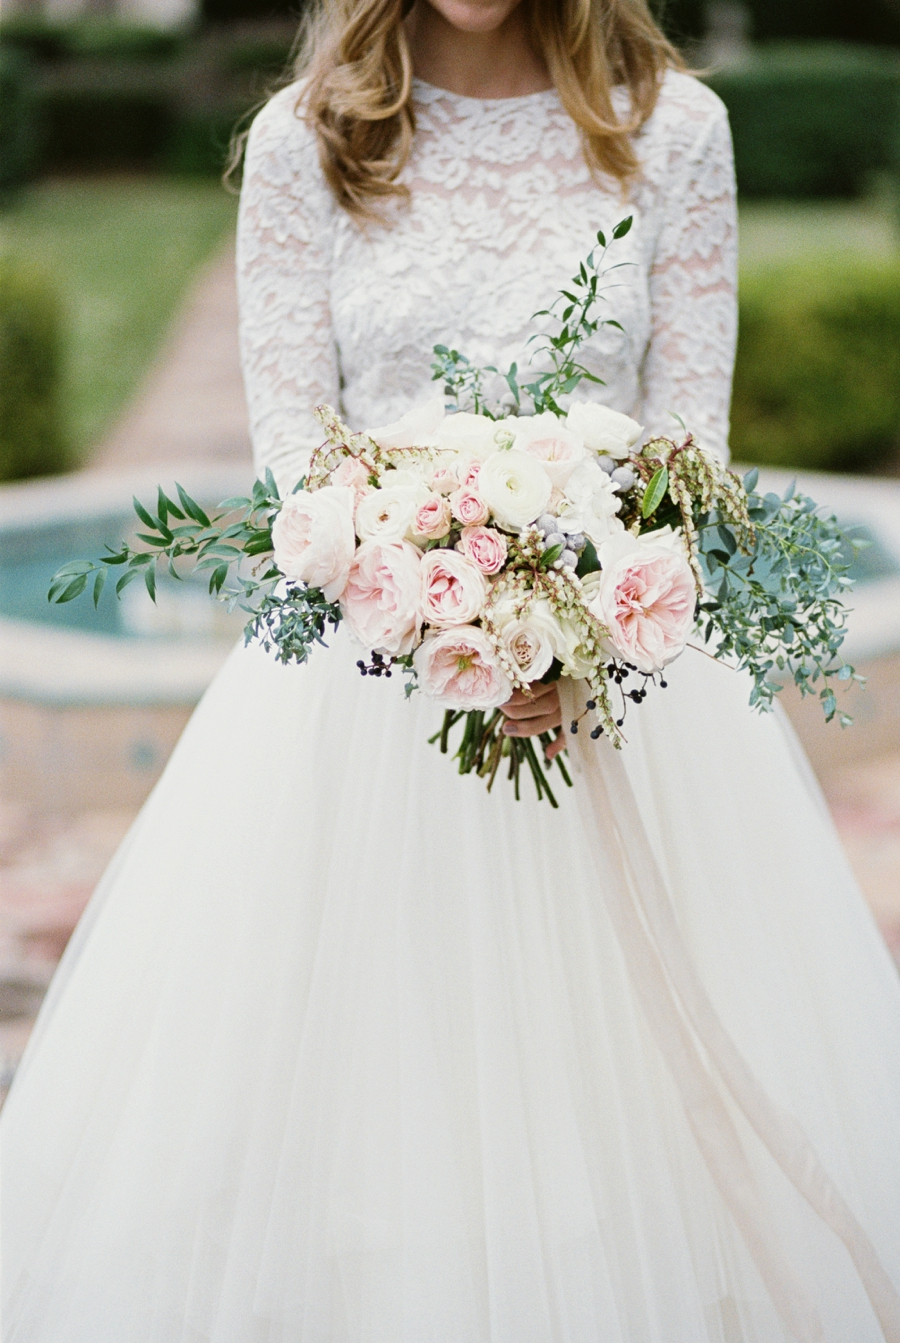 Romantic European Inspired Wedding Ideas | Every Last Detail